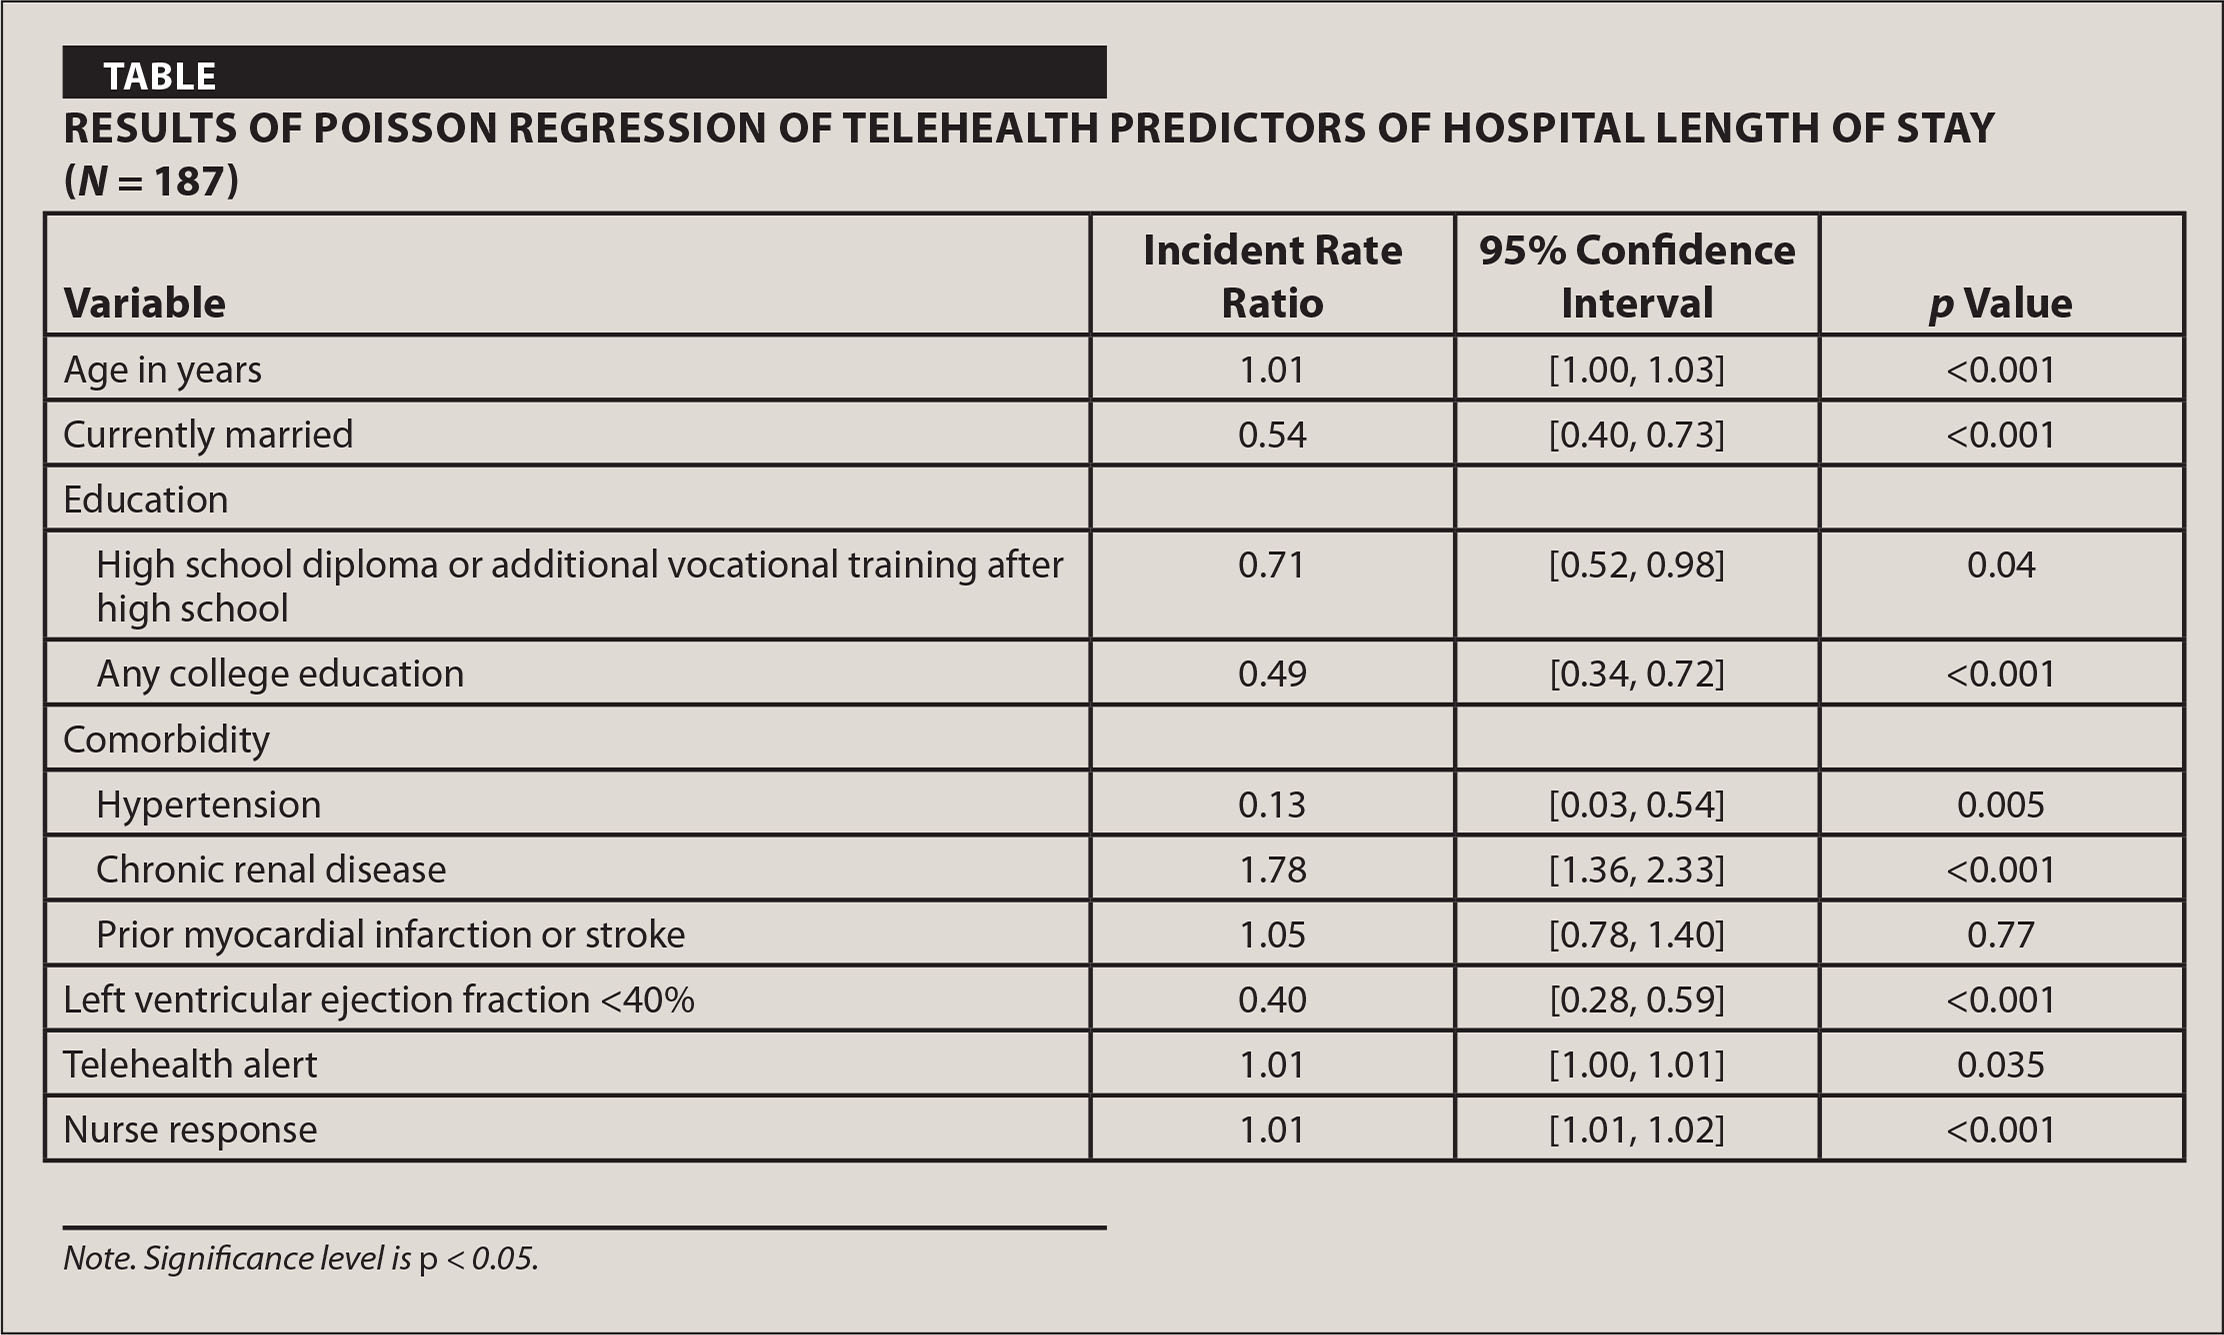 Results of Poisson Regression of Telehealth Predictors of Hospital Length of Stay (N = 187)